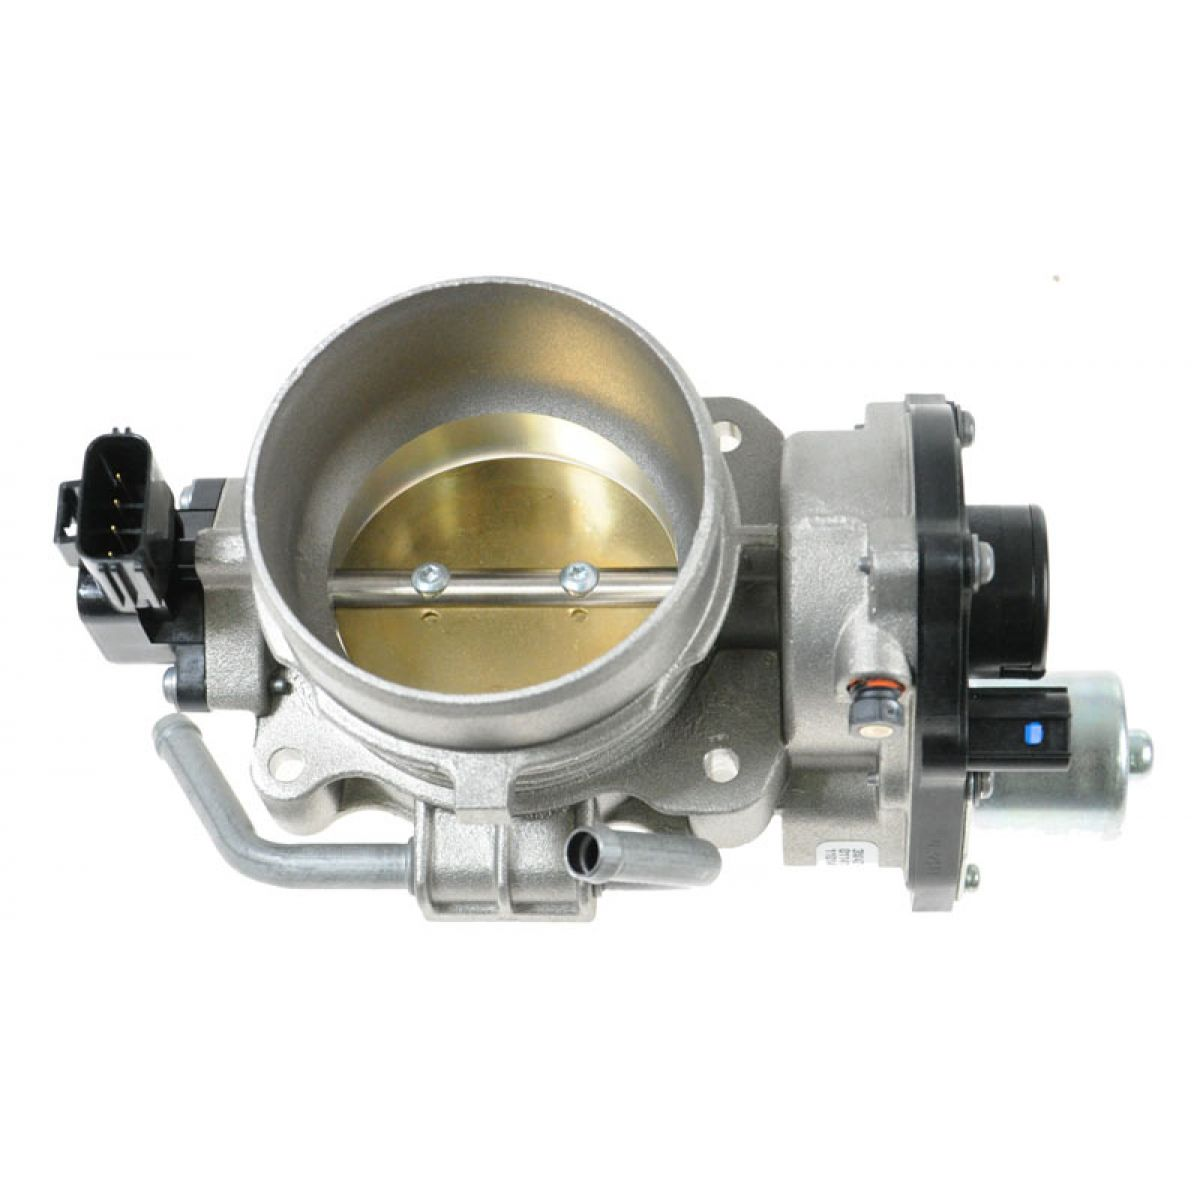 motorcraft throttle body assembly for ford thunderbird. Black Bedroom Furniture Sets. Home Design Ideas